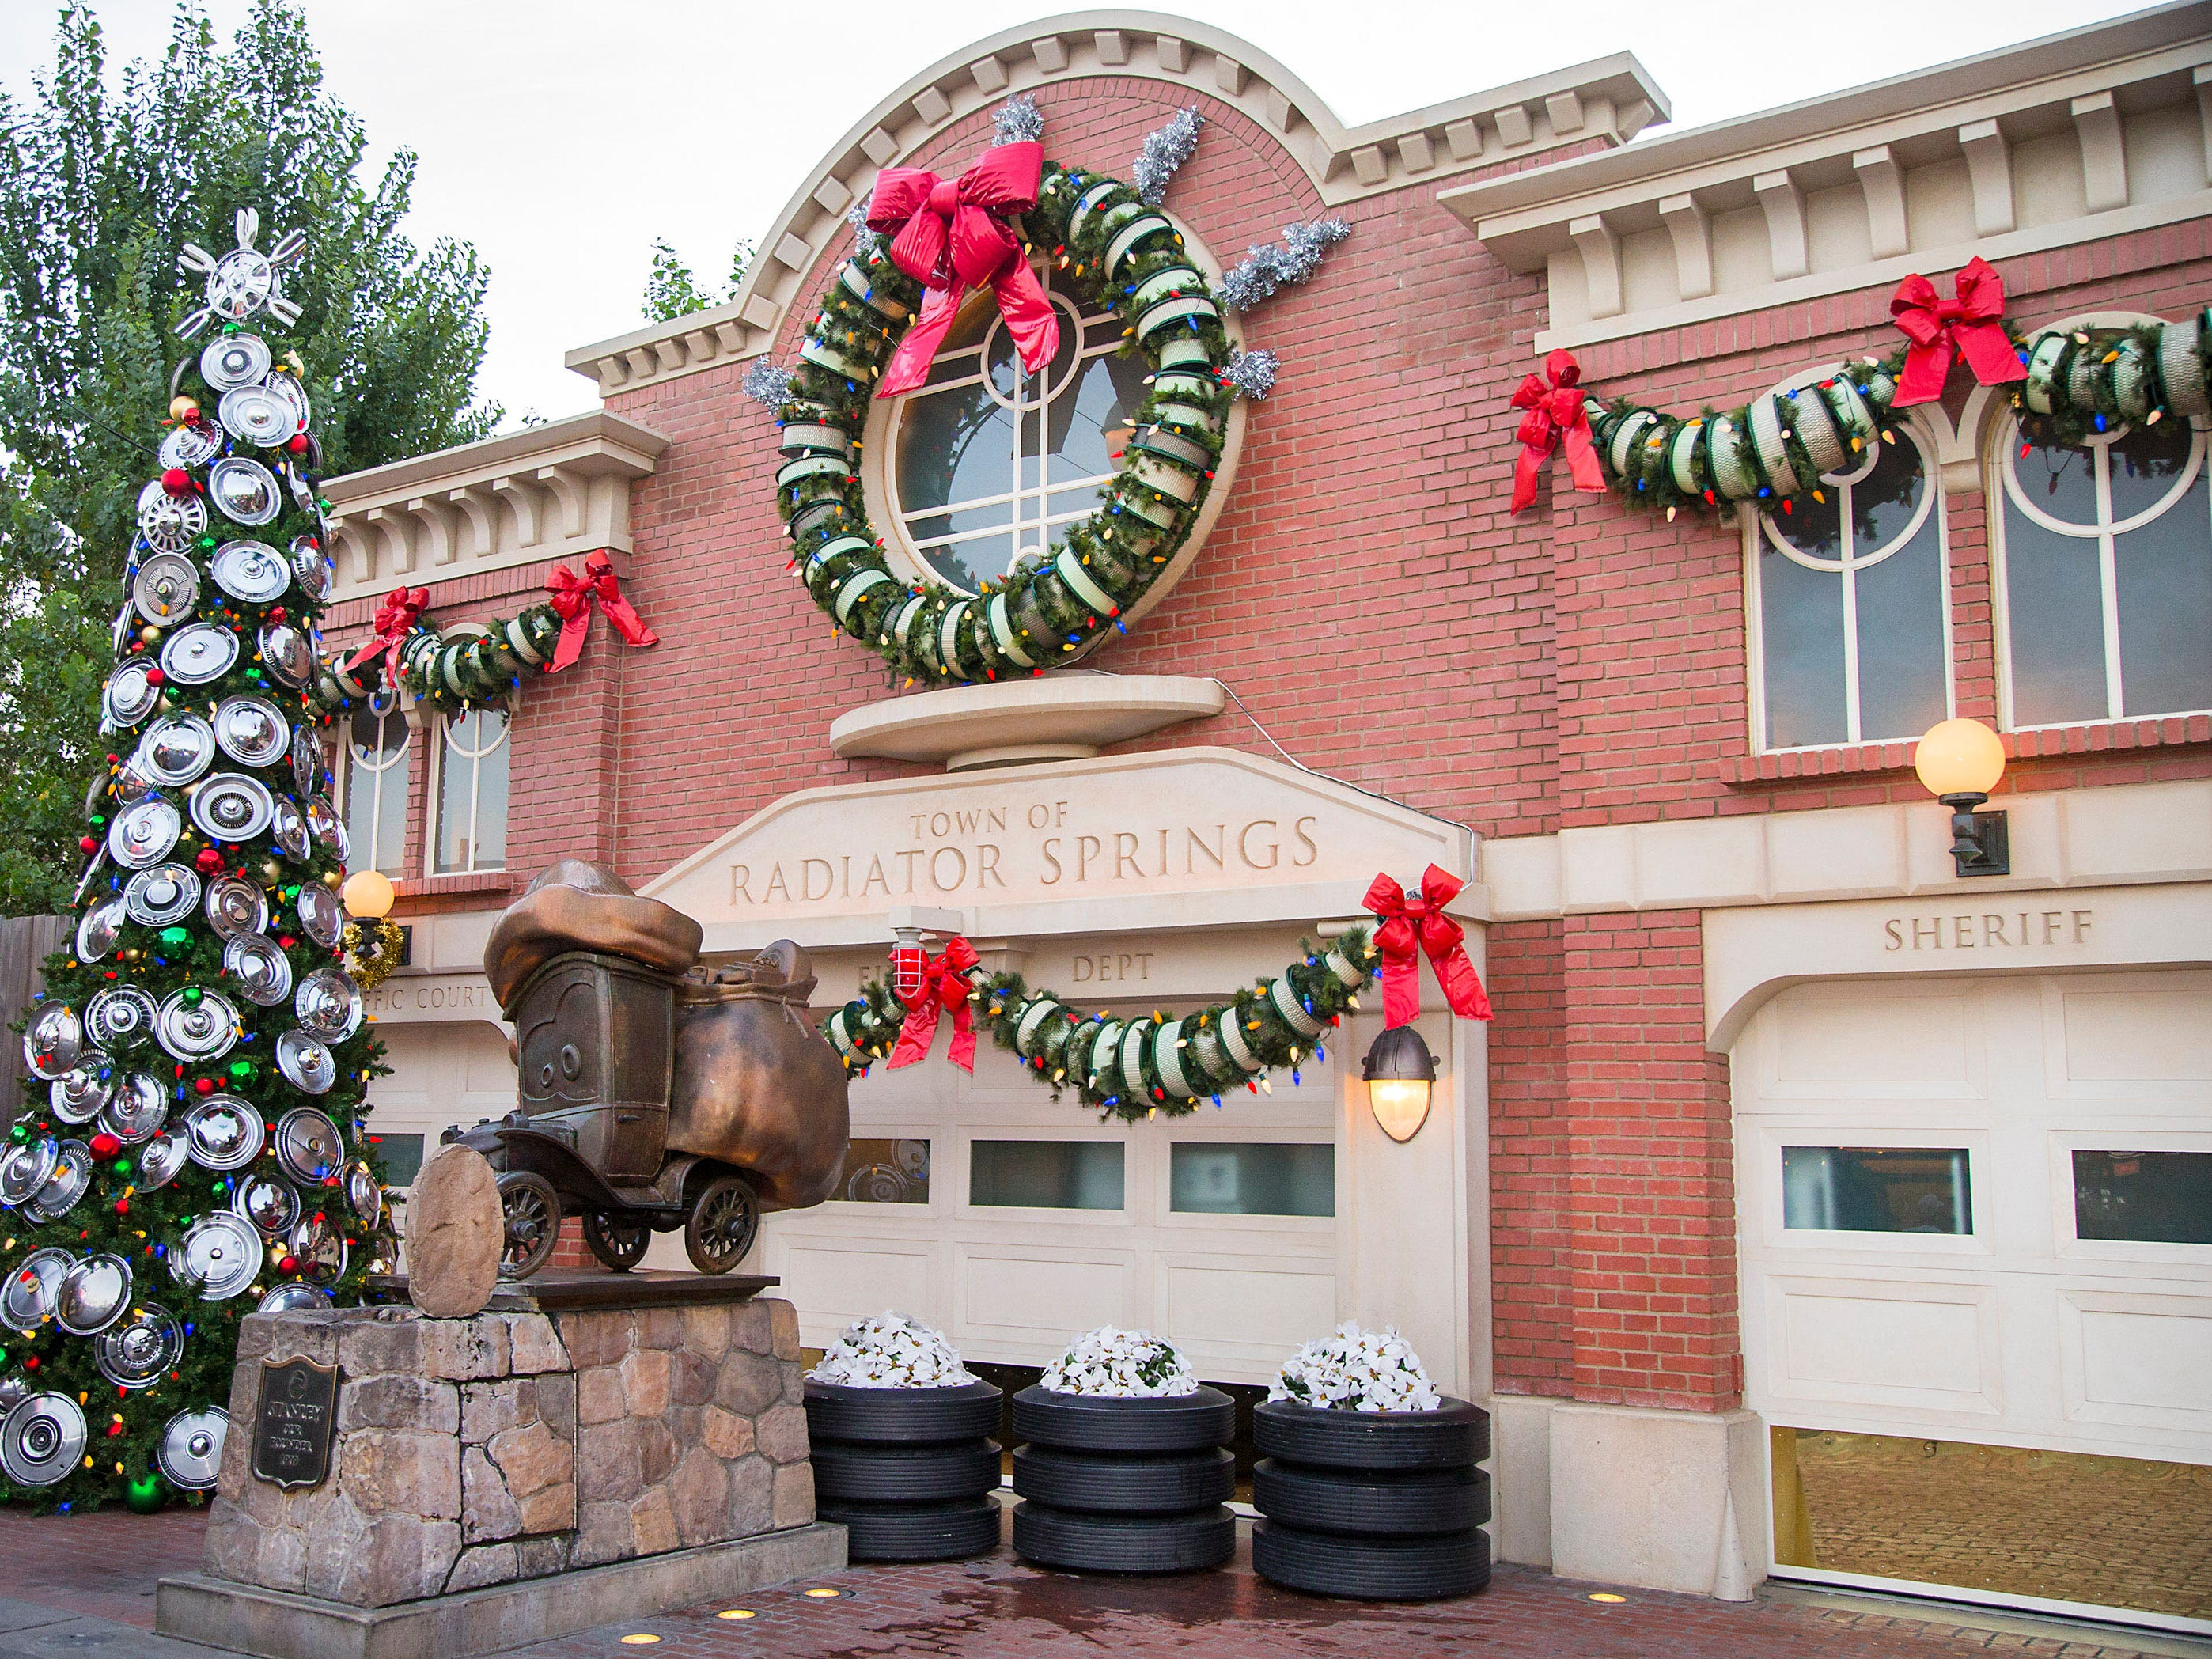 "Lightning McQueen and the residents of Radiator Springs are set to ""deck the halls"" this holiday season at Cars Land in Disney California Adventure park with festive decorations down Route 66. Holidays at the Disneyland Resort return Nov. 9, 2018 through Jan. 6, 2019."